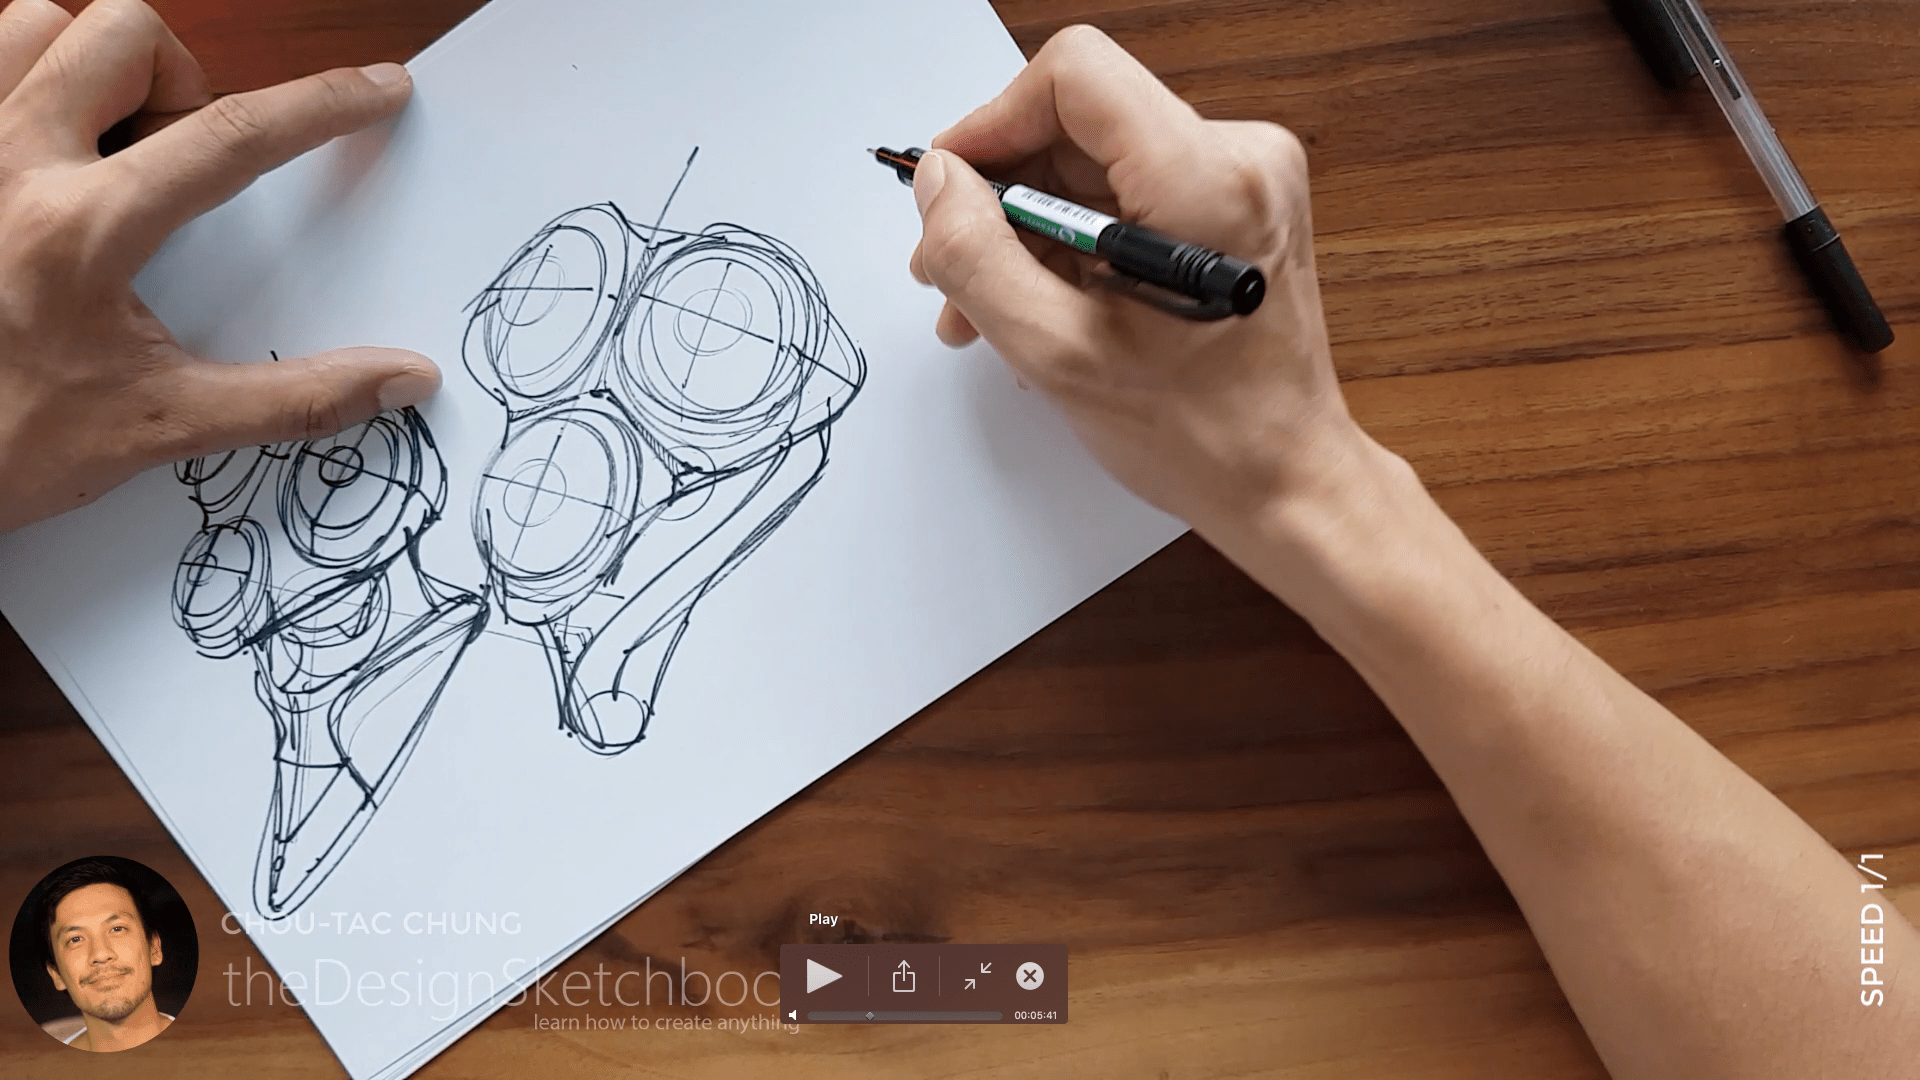 Sketching an electric shaver PHILIPS with the pilot twin marker pen - the design sketchbook - chung chou tac c7